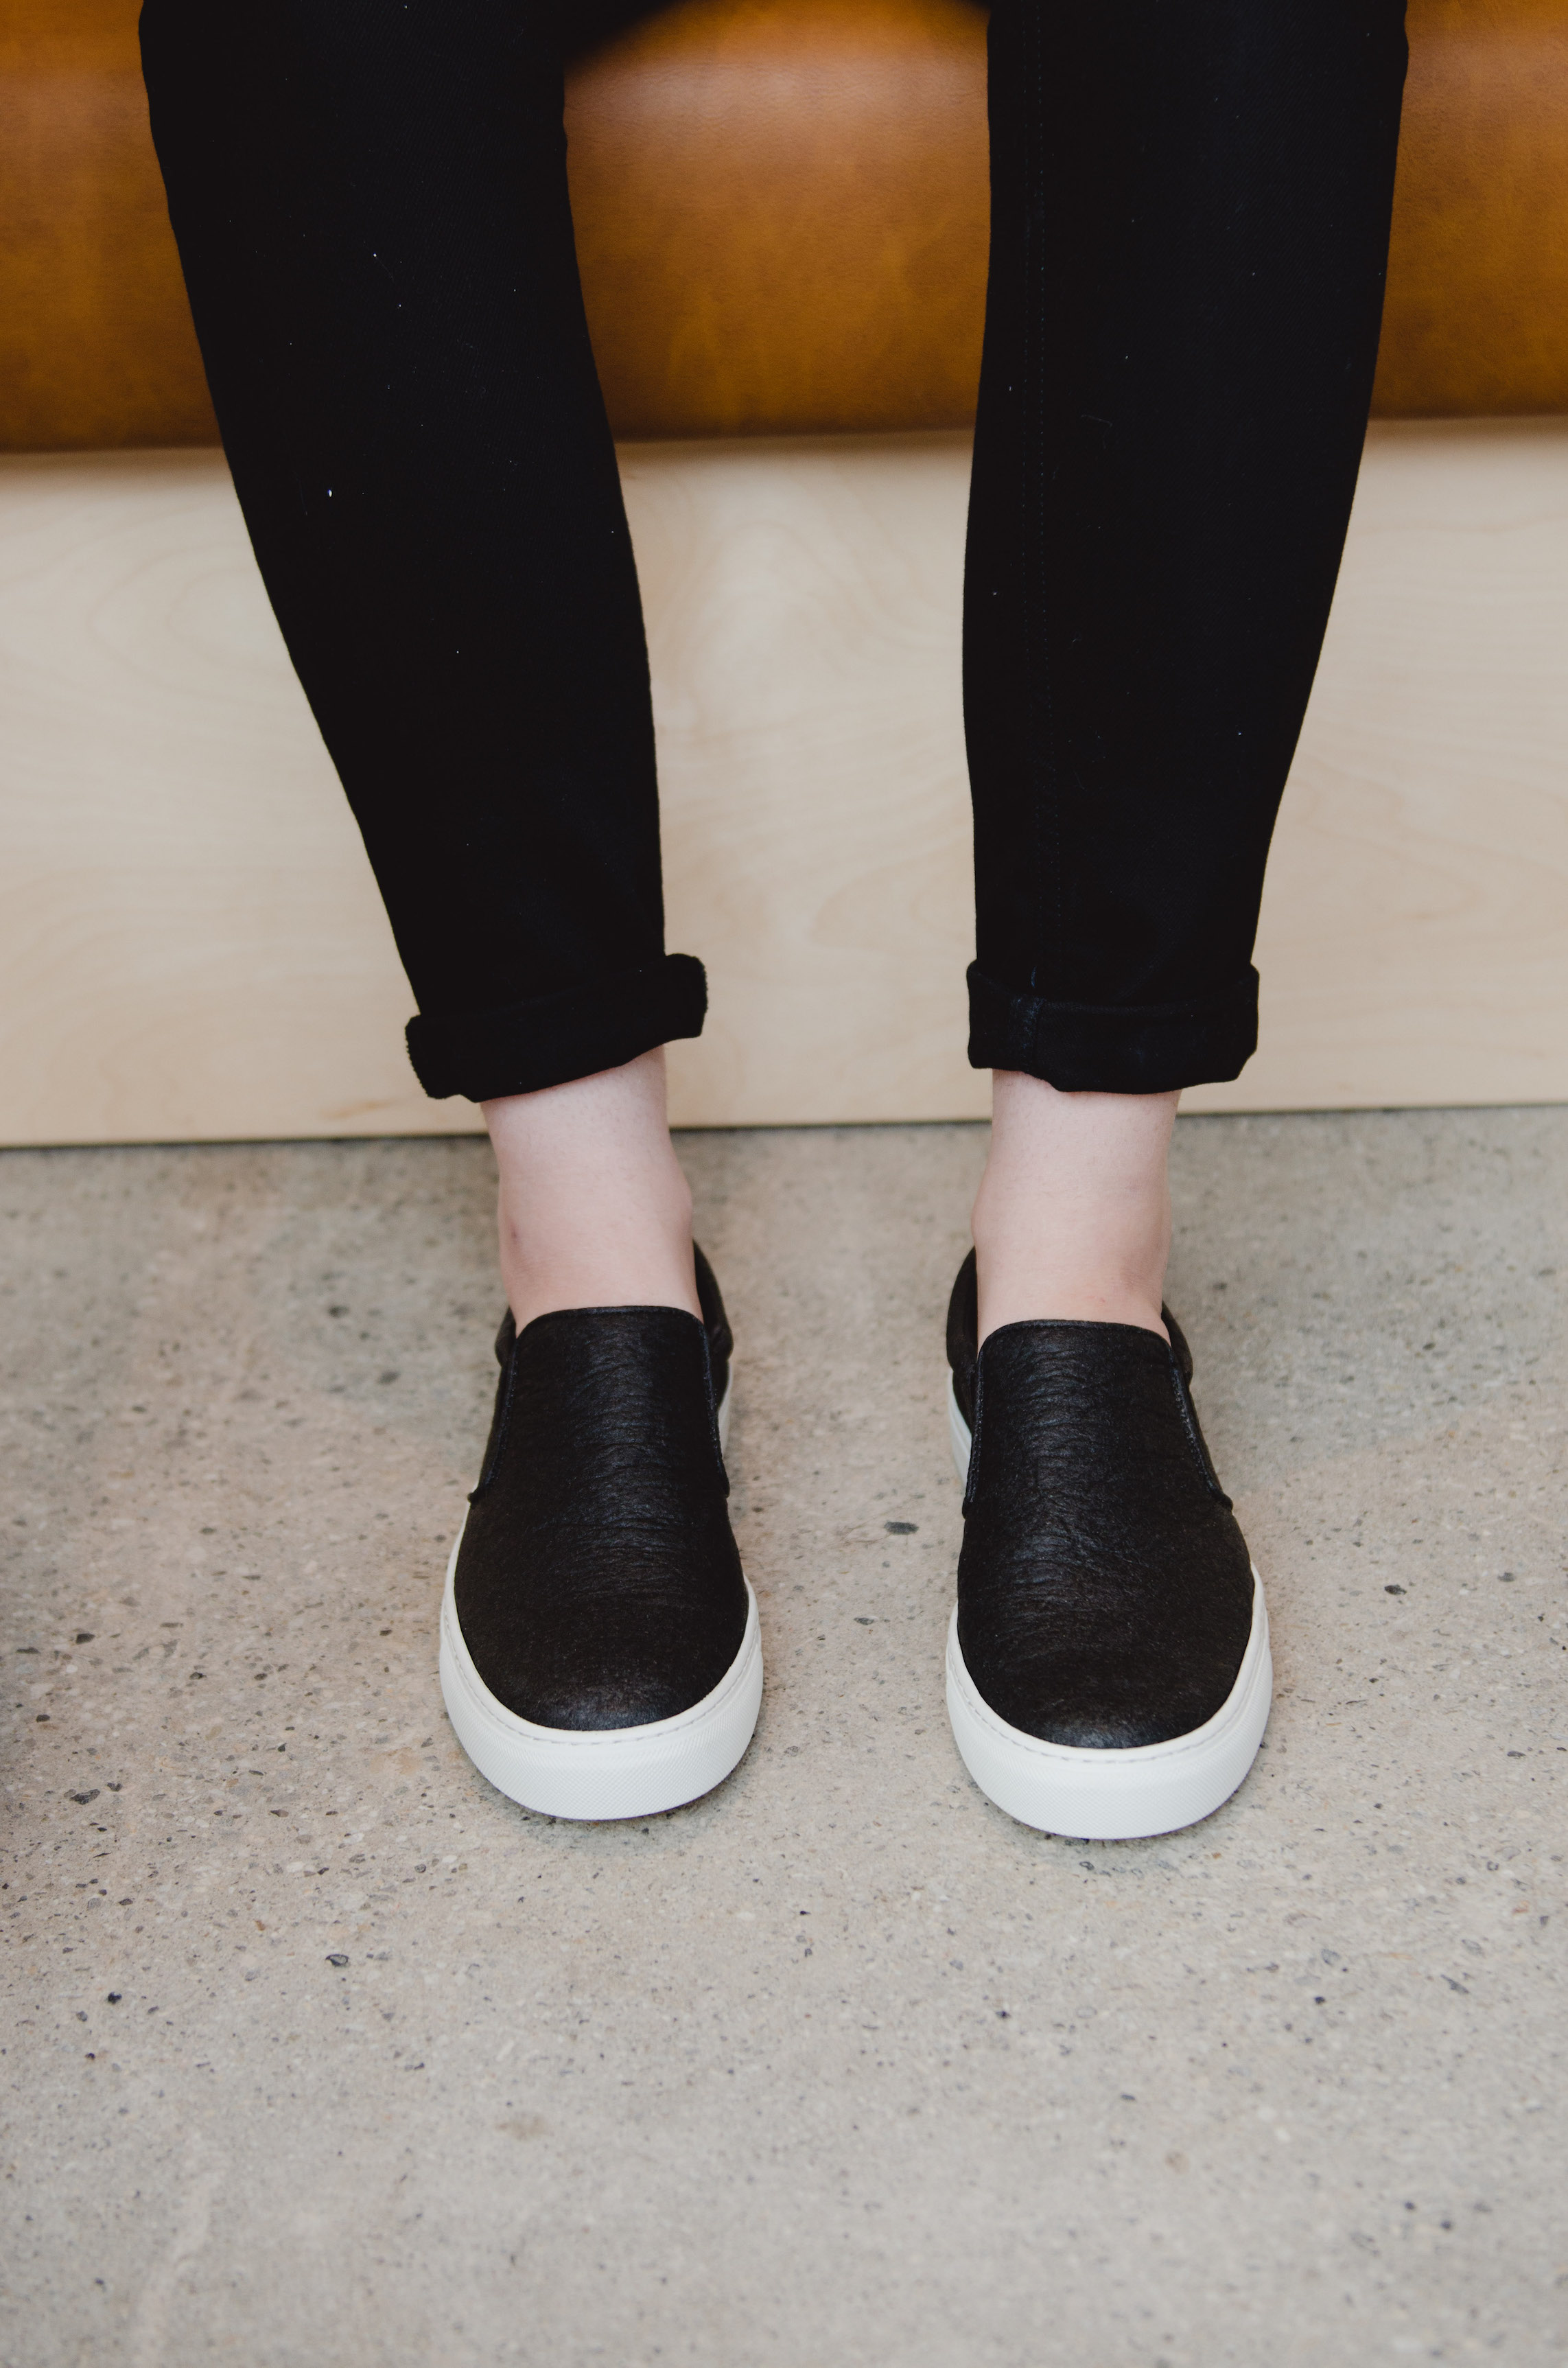 Nae vegan shoes // A Week Of Thrifted & Ethical Outfits With Emilie Maine On The Good Trade